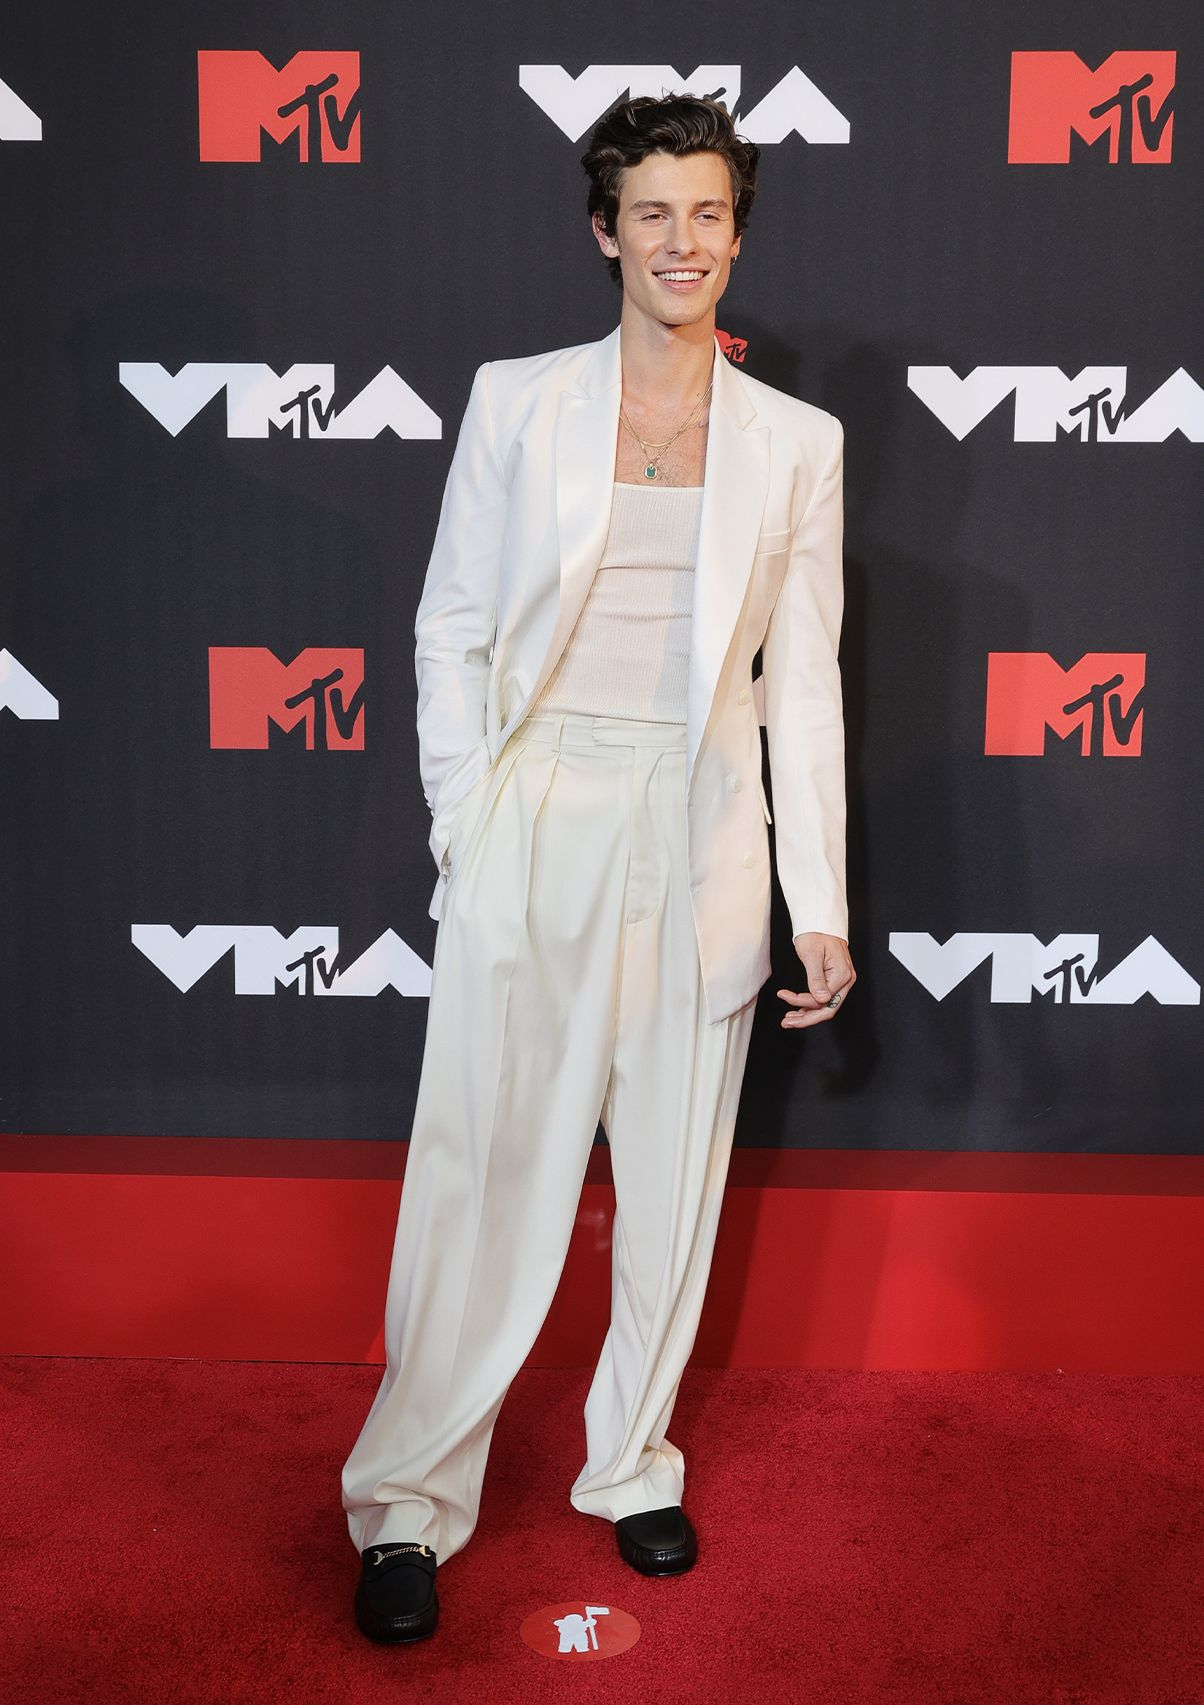 The MTV VMAs Red Carpet Looks That Shocked and Amazed Us - mtv vma red carpet 2021 295172 1631487099763